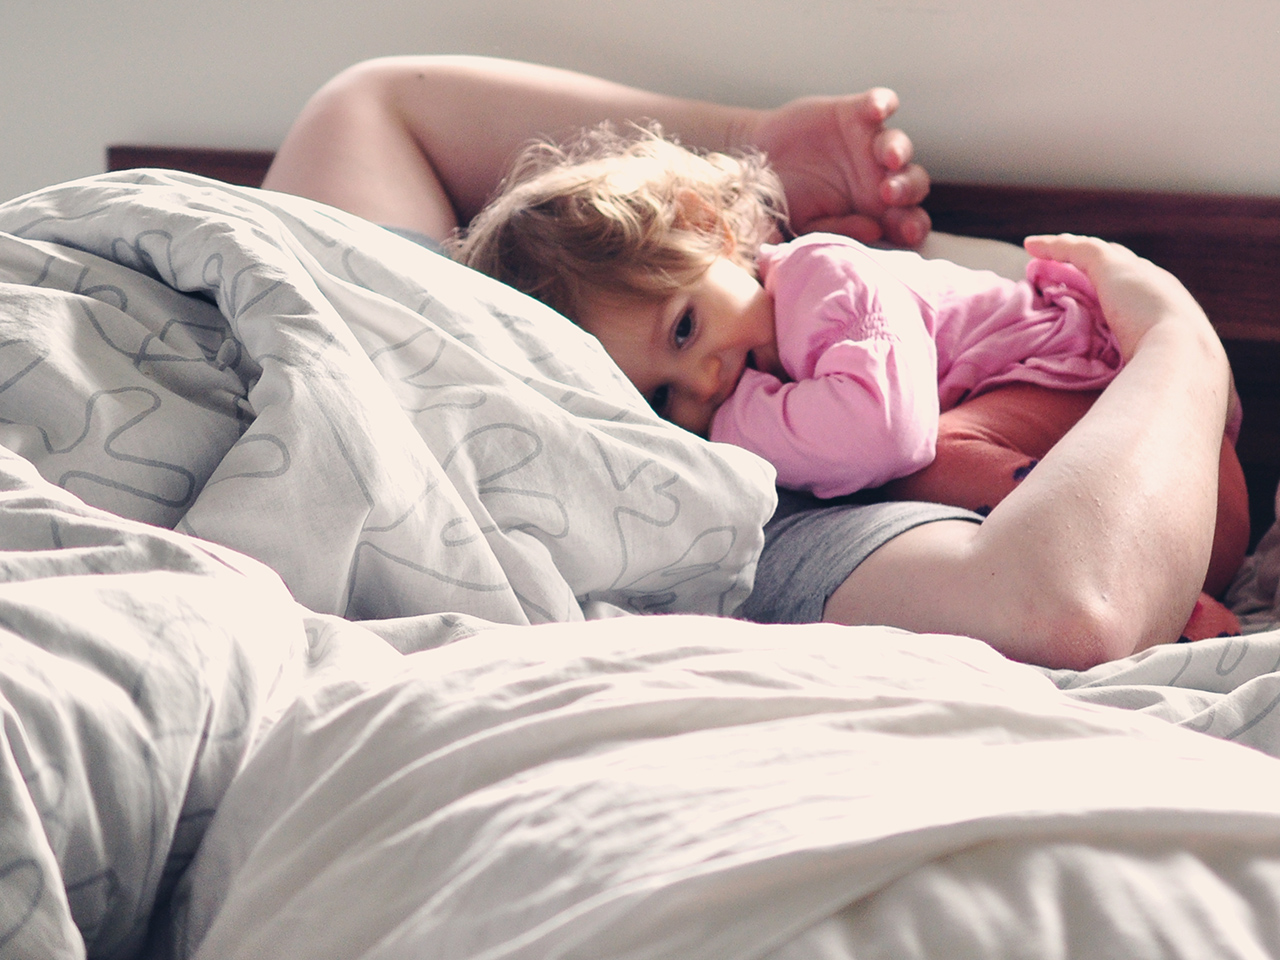 A toddler girl waking her dad up in bed